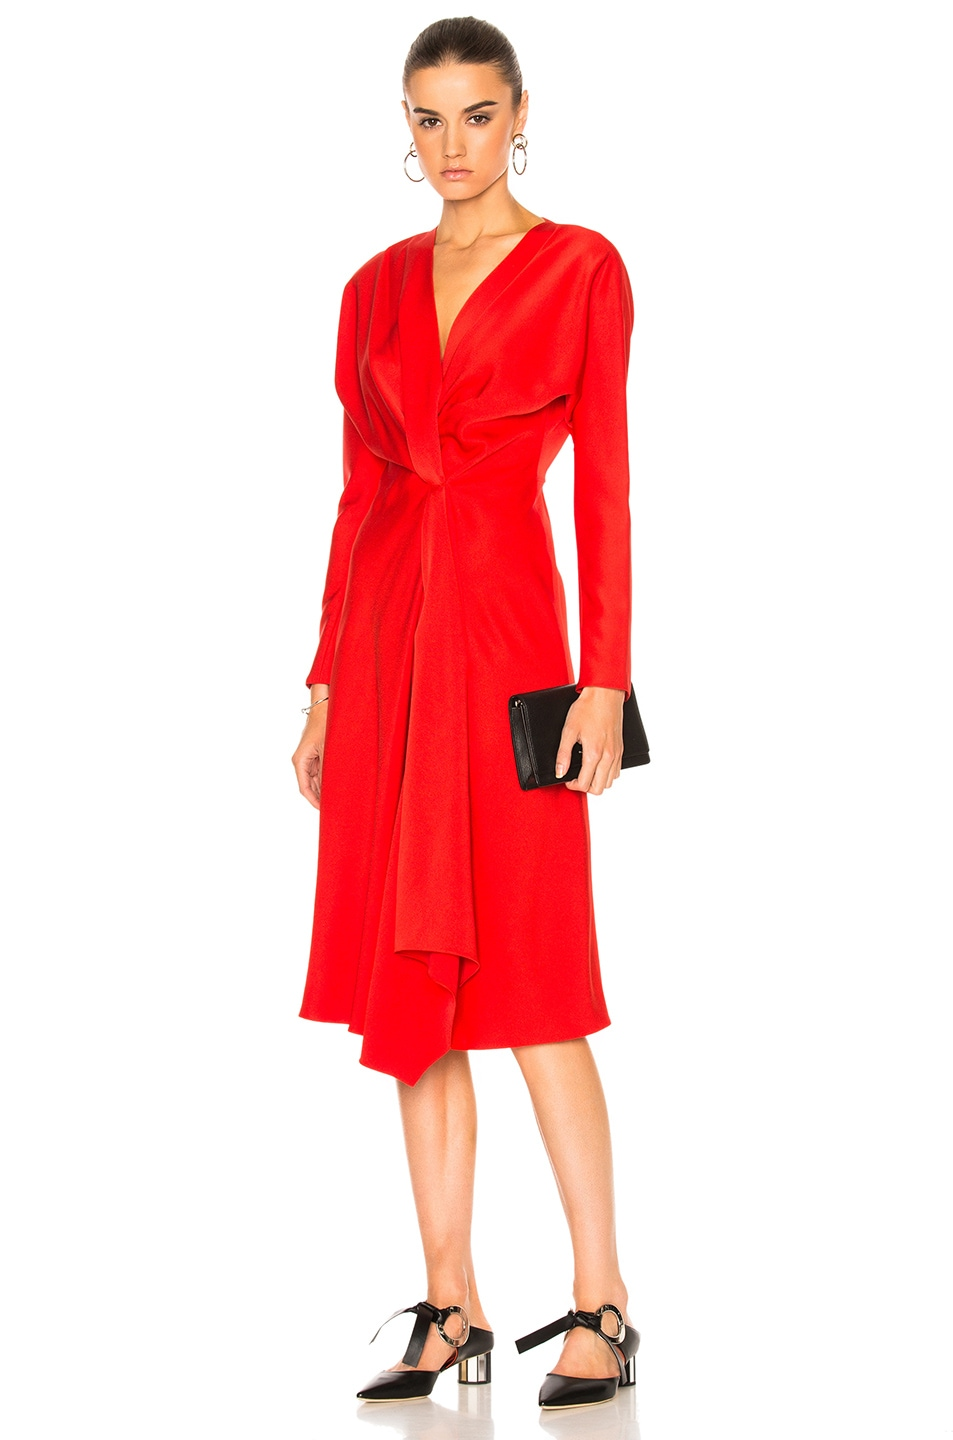 2fb9888891c2 Image 1 of Victoria Beckham Crepe Back Satin Drape Wrap Dress in Candy